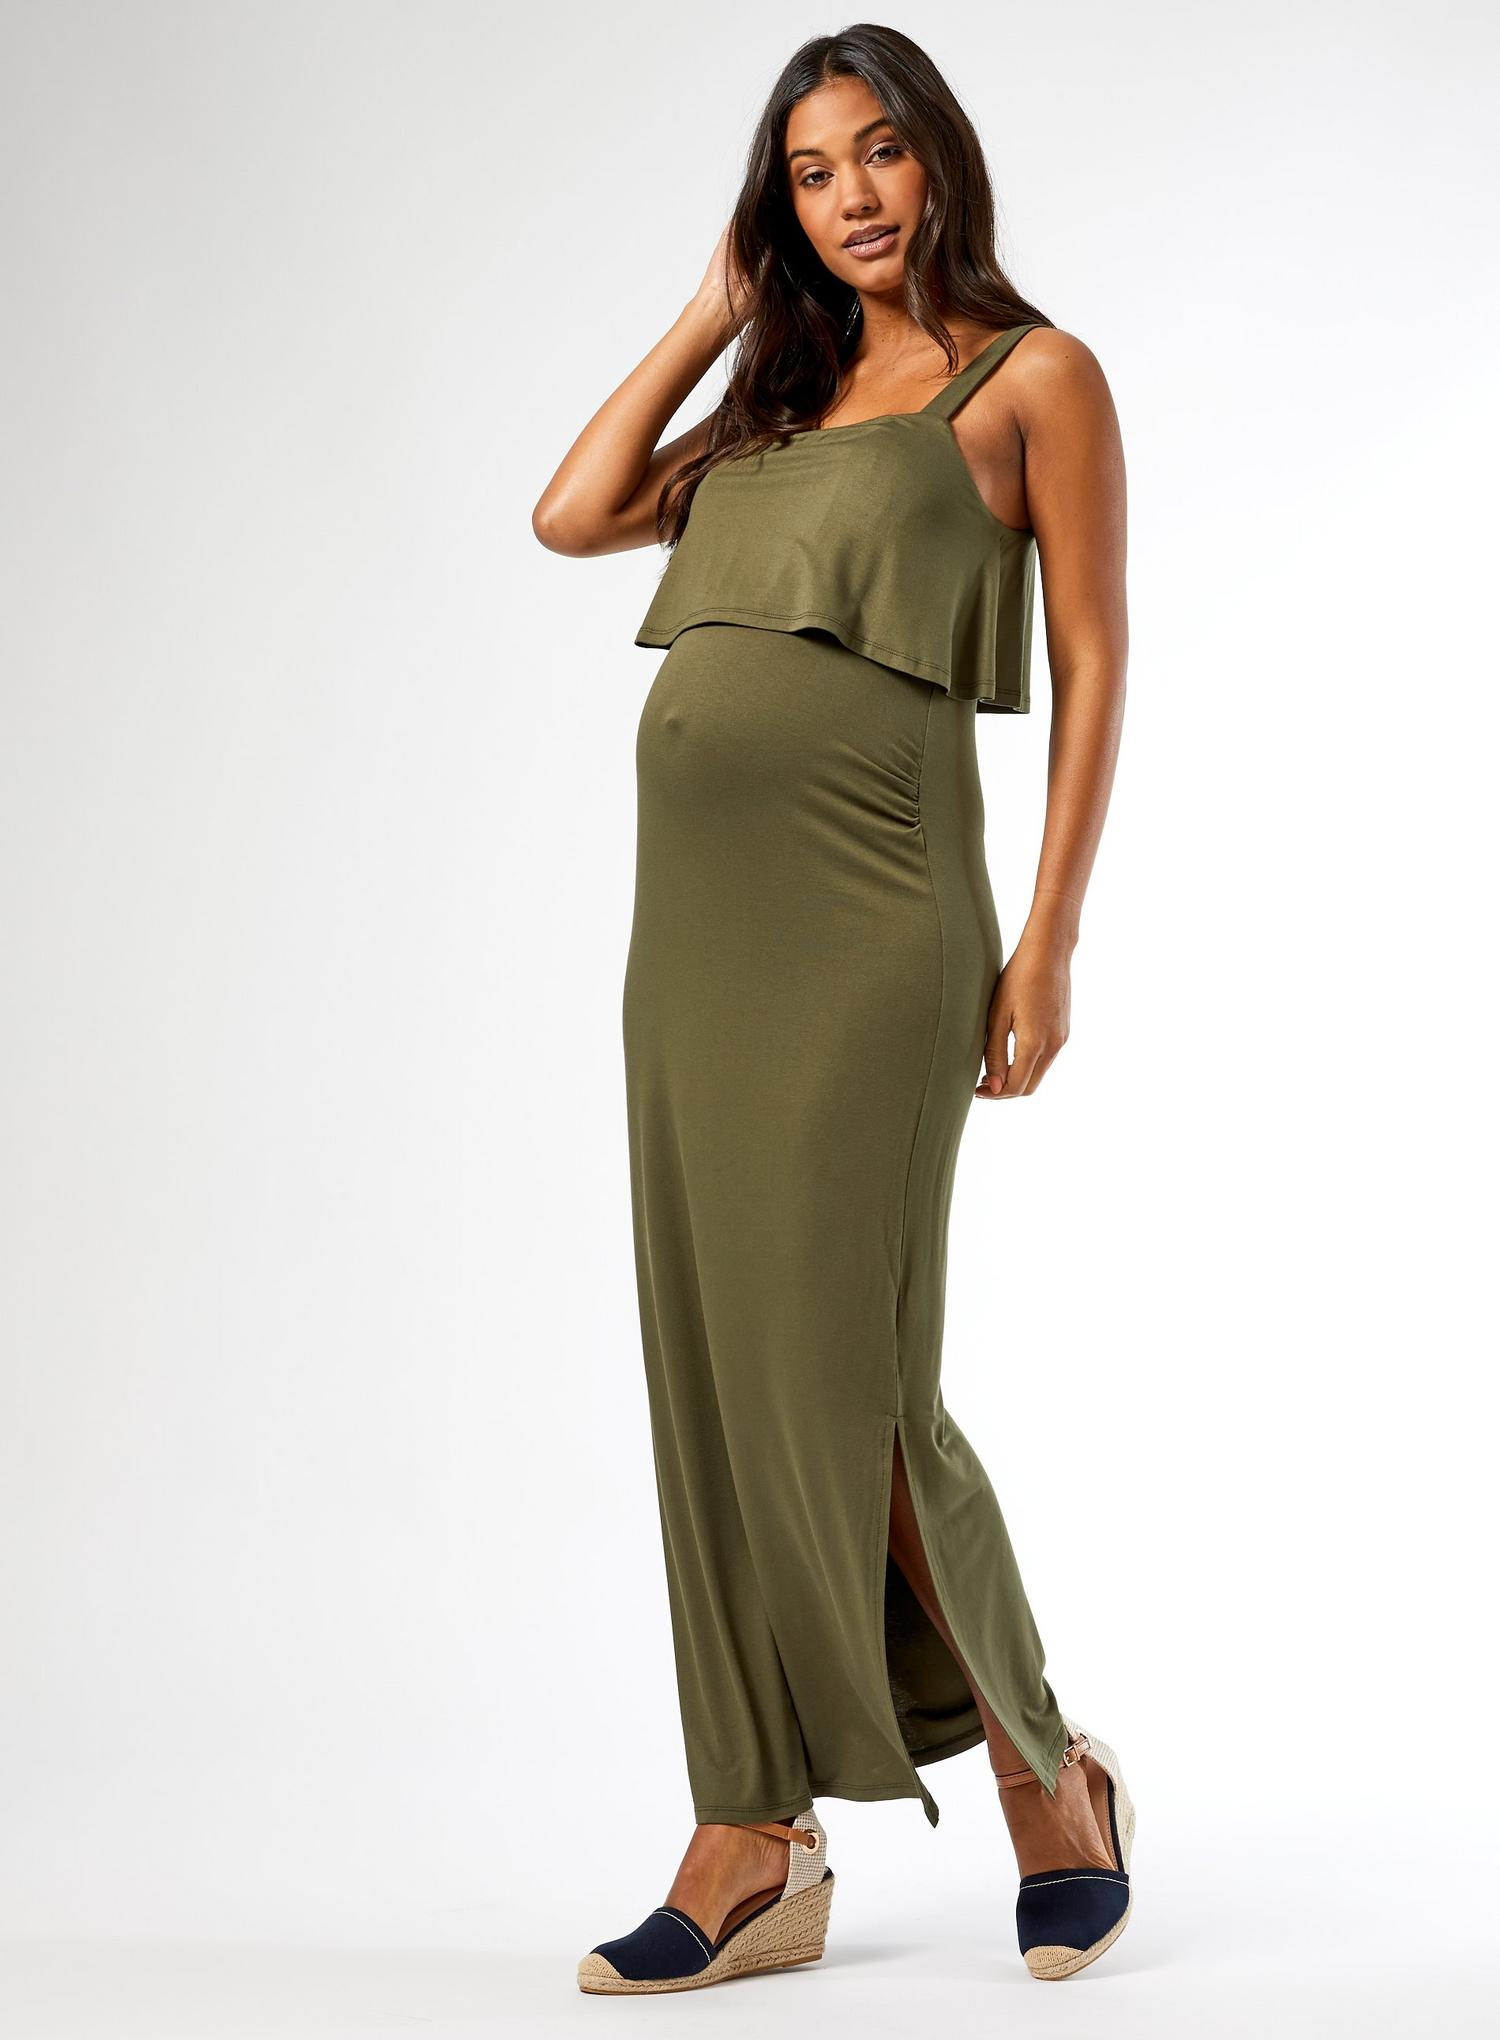 130 Maternity Khaki Camisole Maxi Dress image number 1